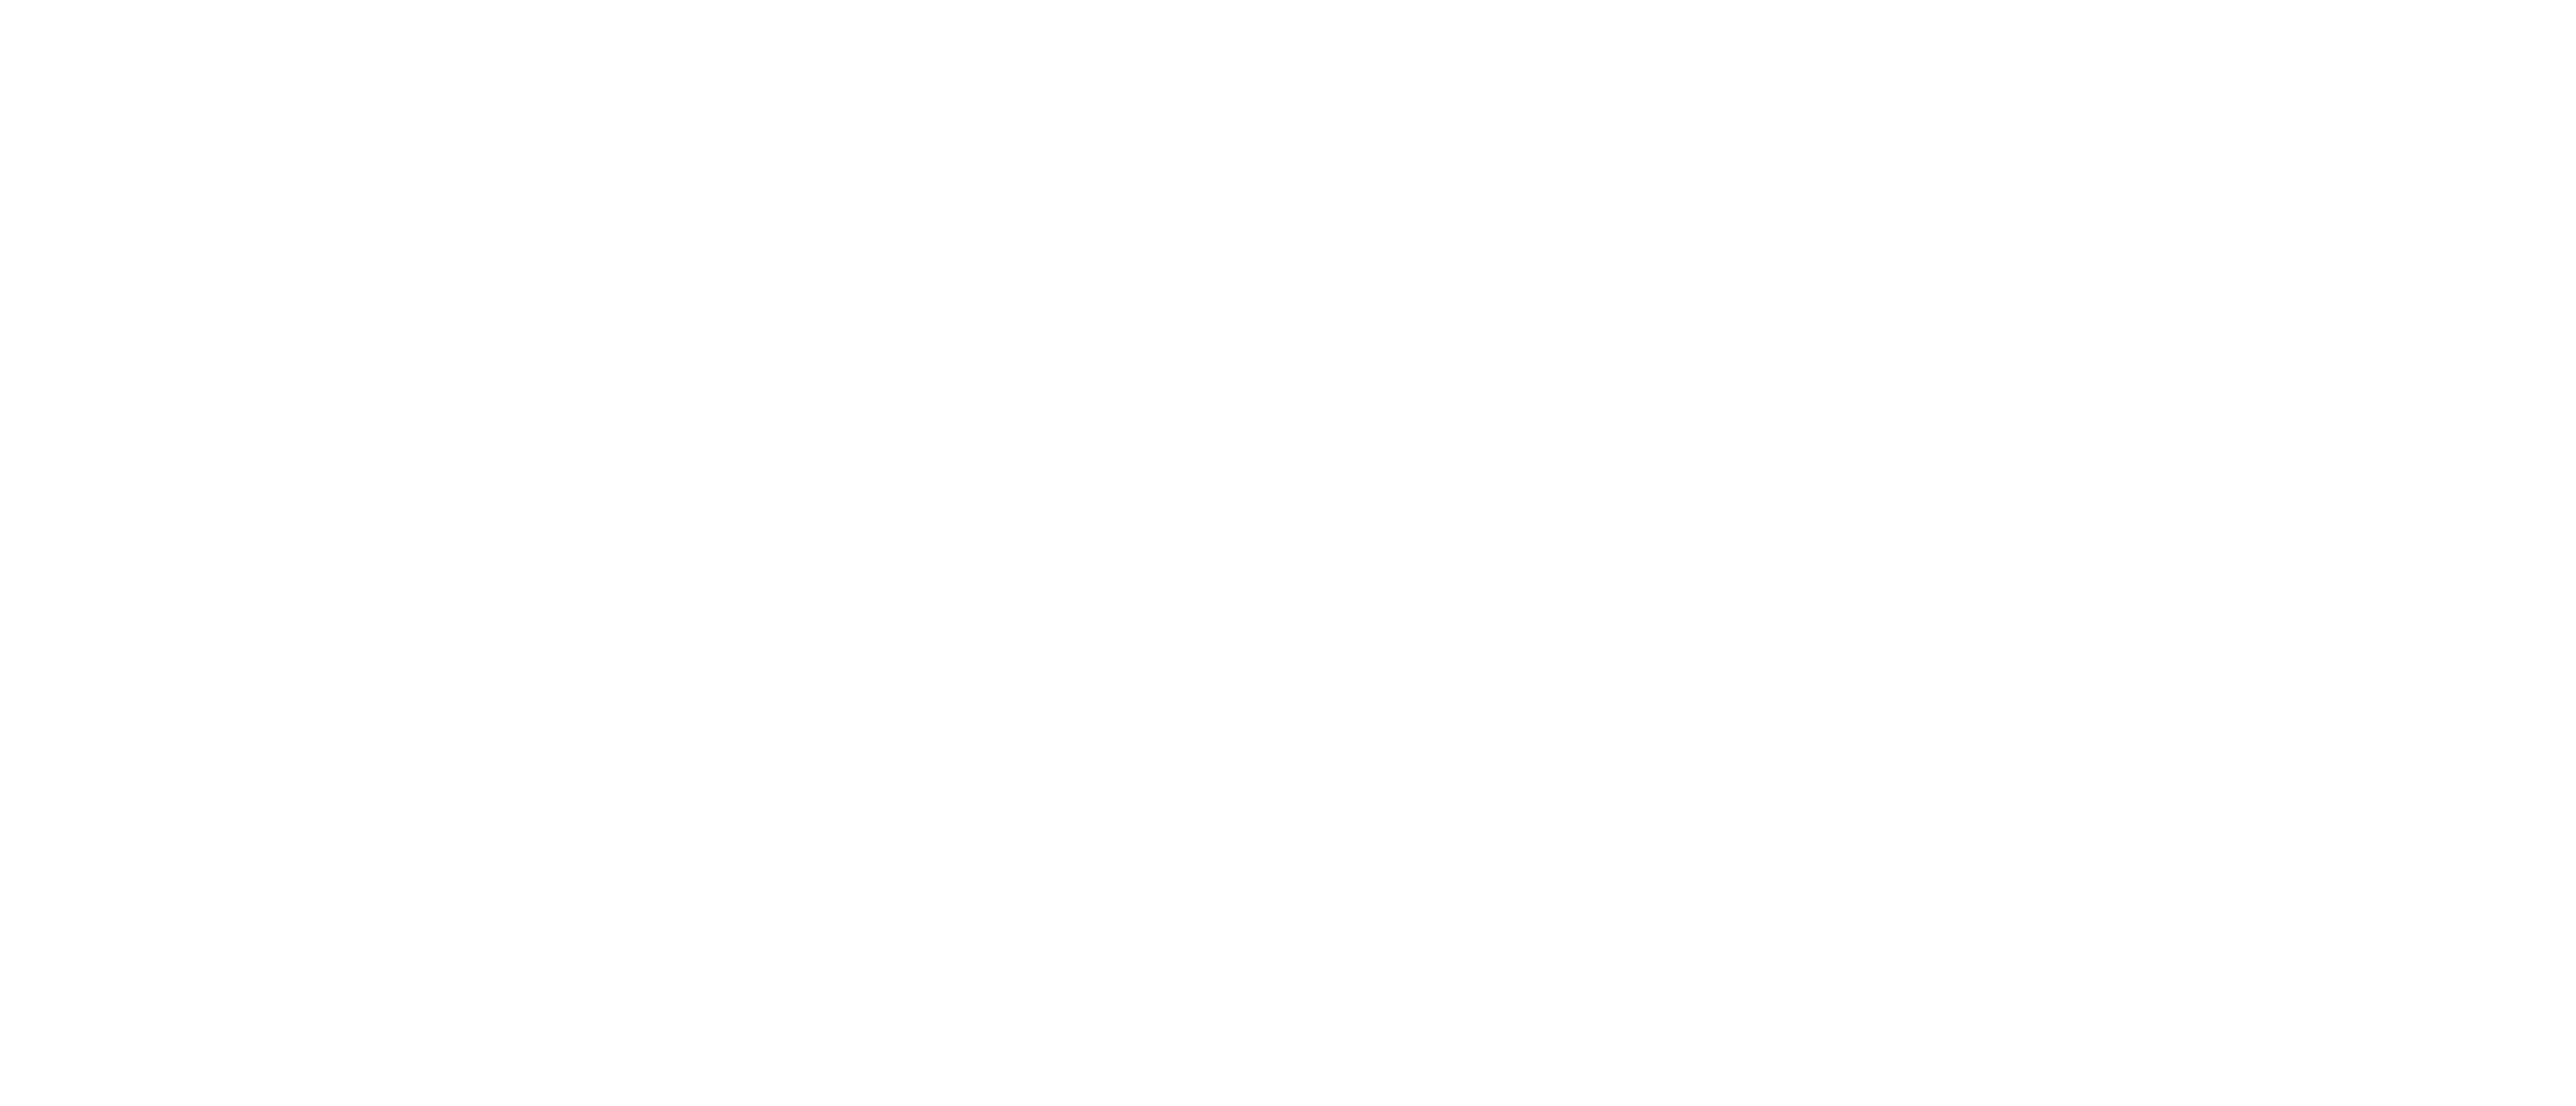 Cheap Game Sale NL